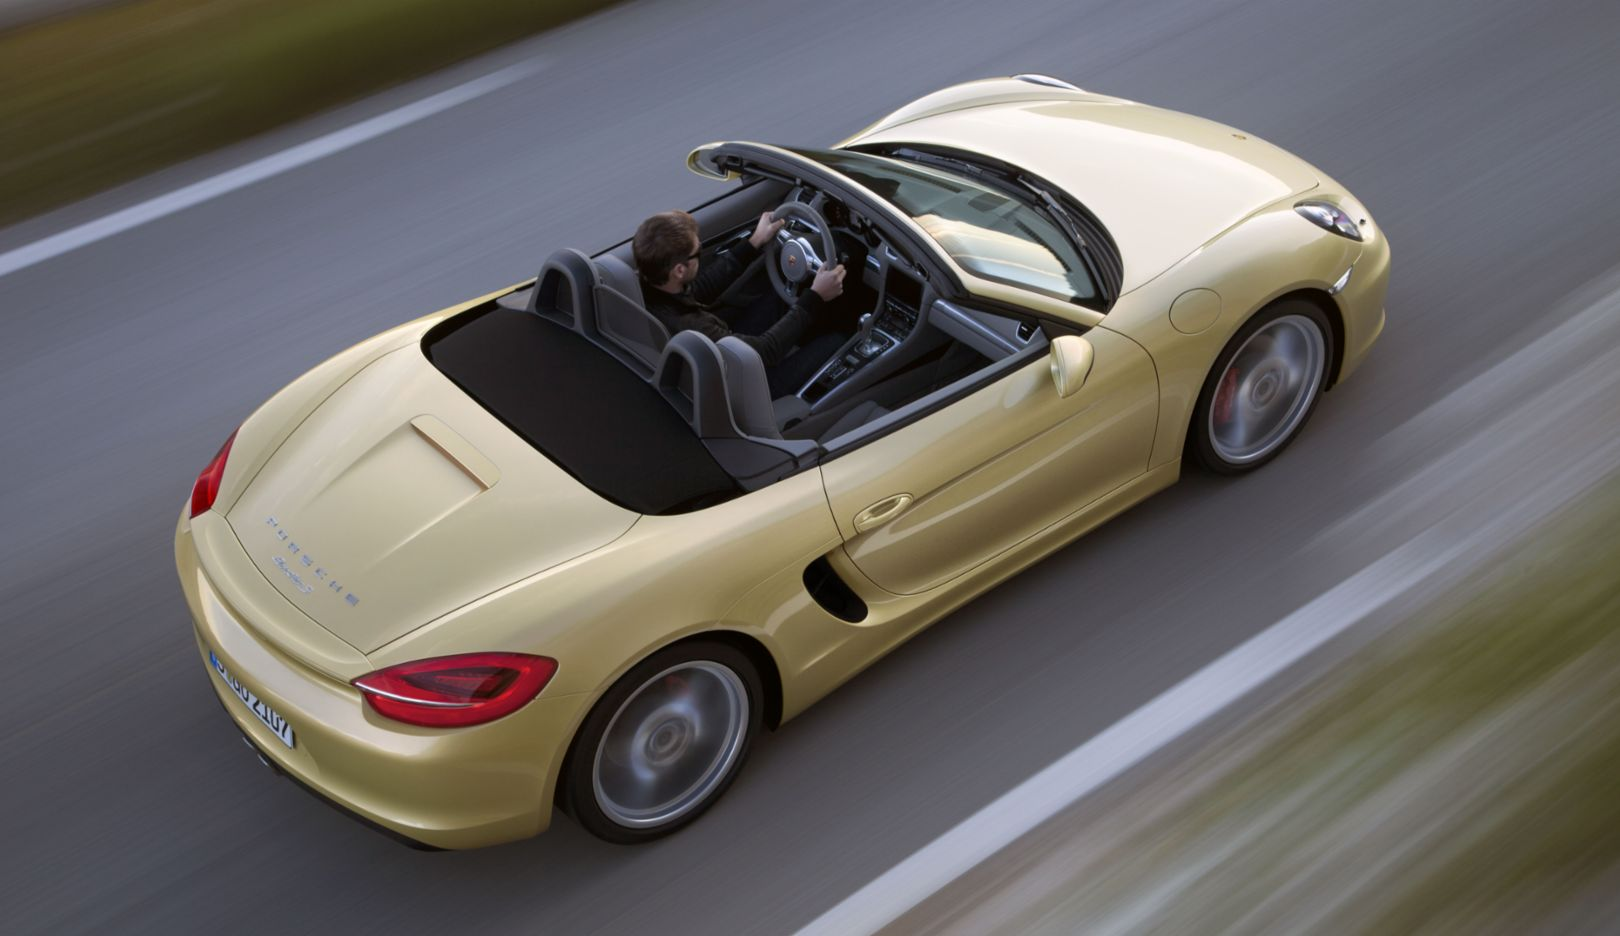 981 generation: model years 2011–2016. The design has been changed from the ground up, too. The Boxster of the 981 generation impresses with a flatter silhouette and more striking contours. The new concept offers more space for the vehicle occupants.